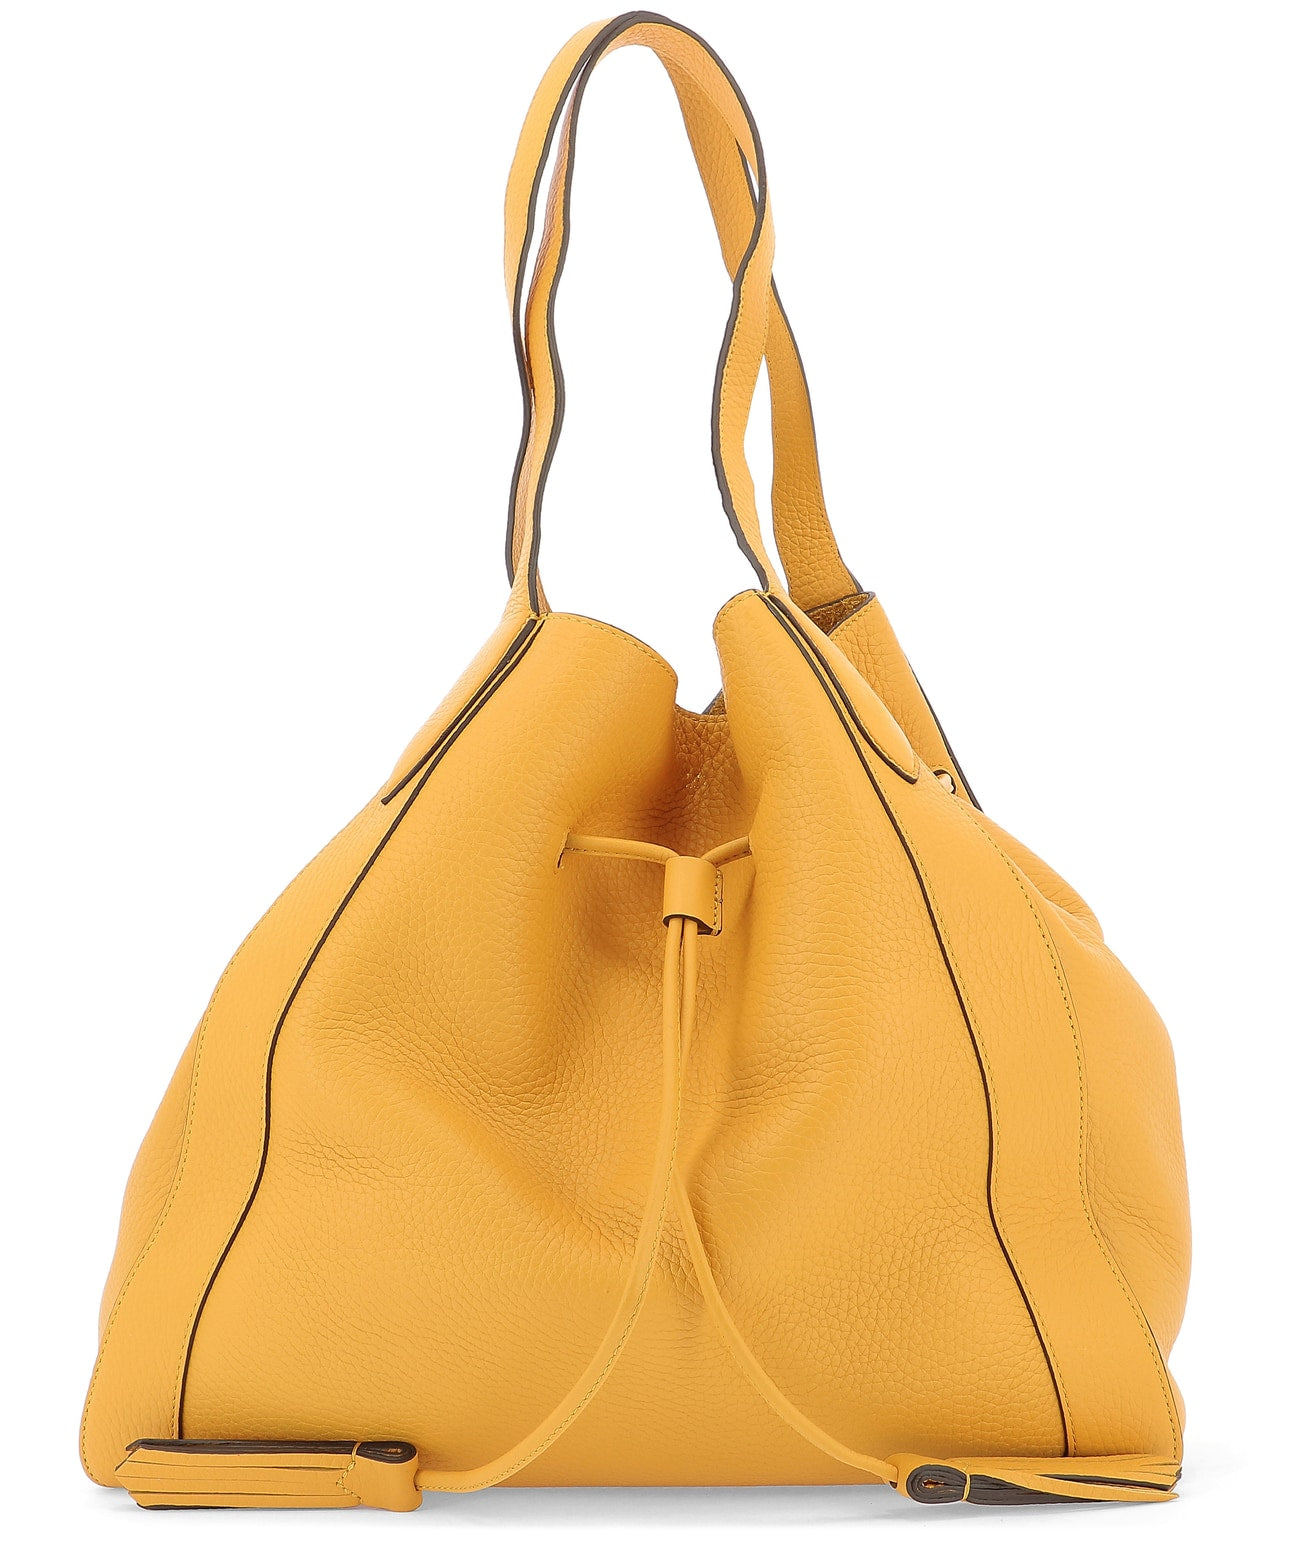 Mulberry Totes MULBERRY MILLIE DRAWSTRING TASSEL DETAIL TOTE BAG